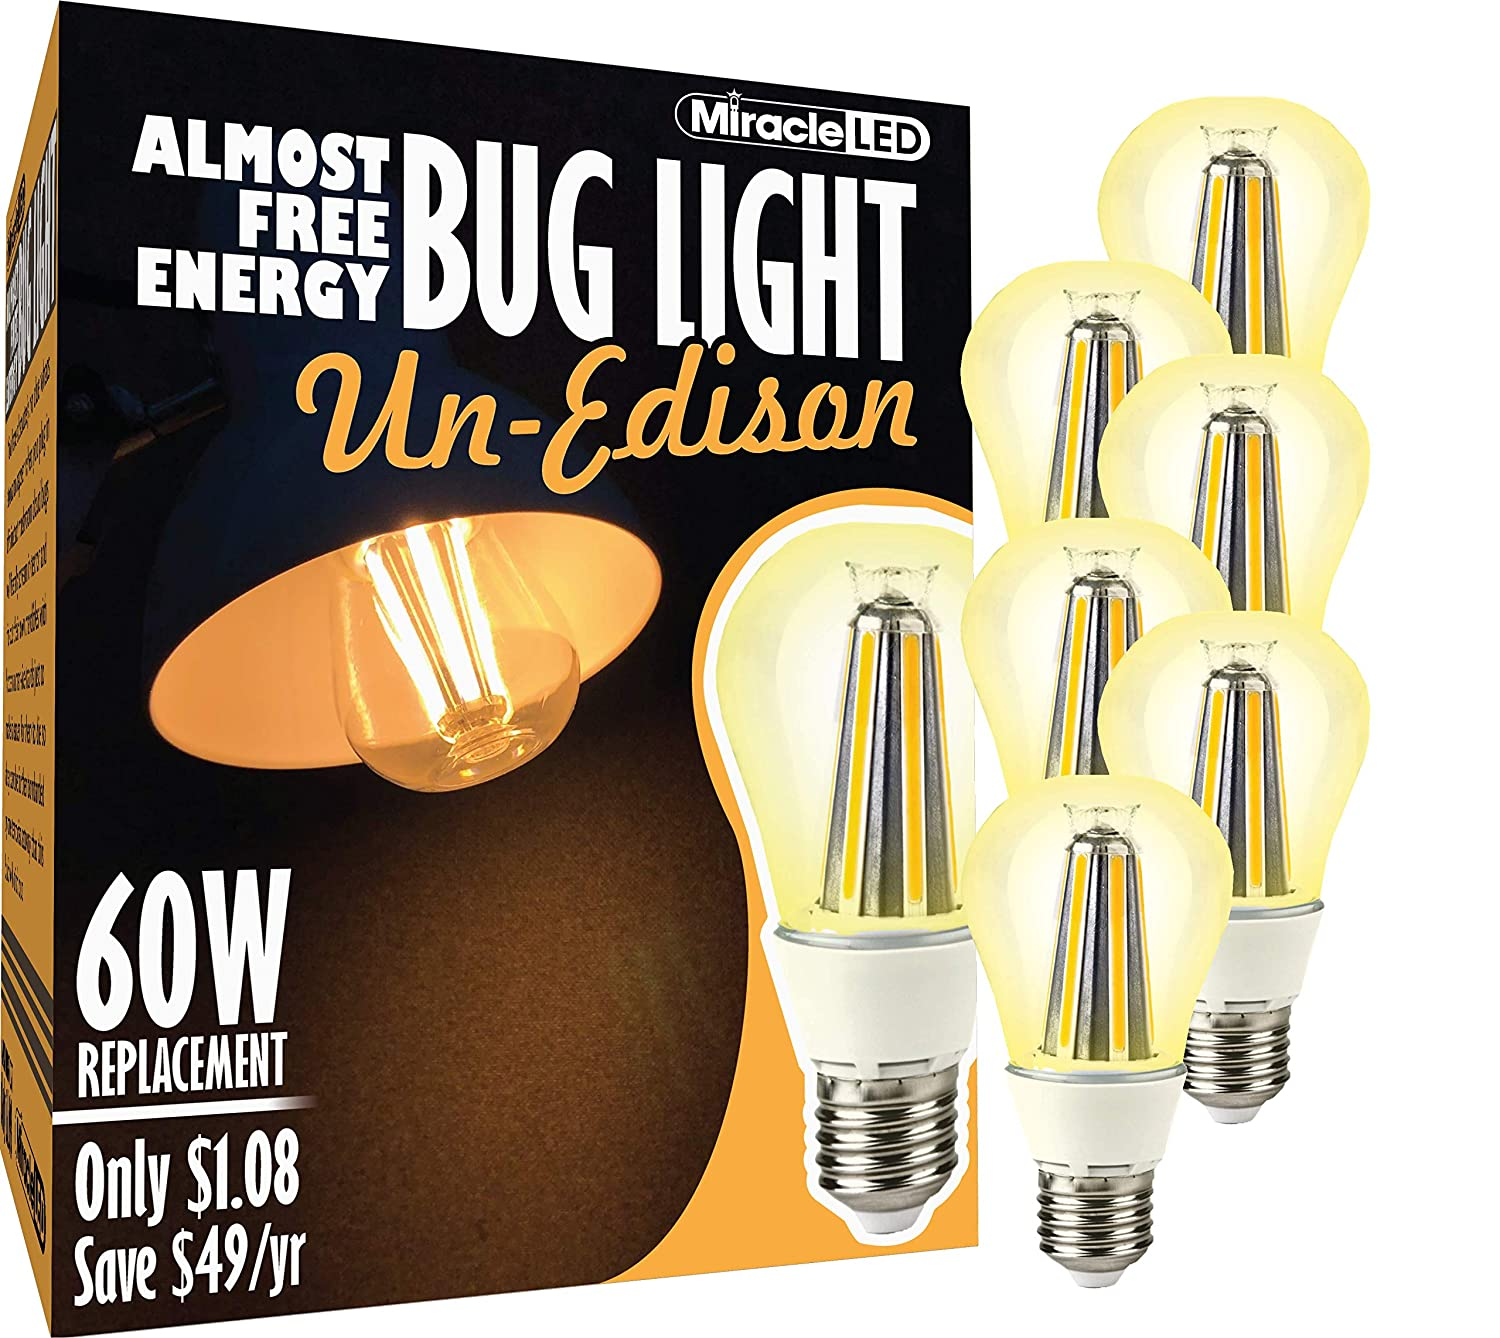 4-Pack Amber Glow Hot 100W Incandescent and Painted Bulbs Replacing Old MiracleLED 602007 Almost Free Energy Bug Light MAX 12W